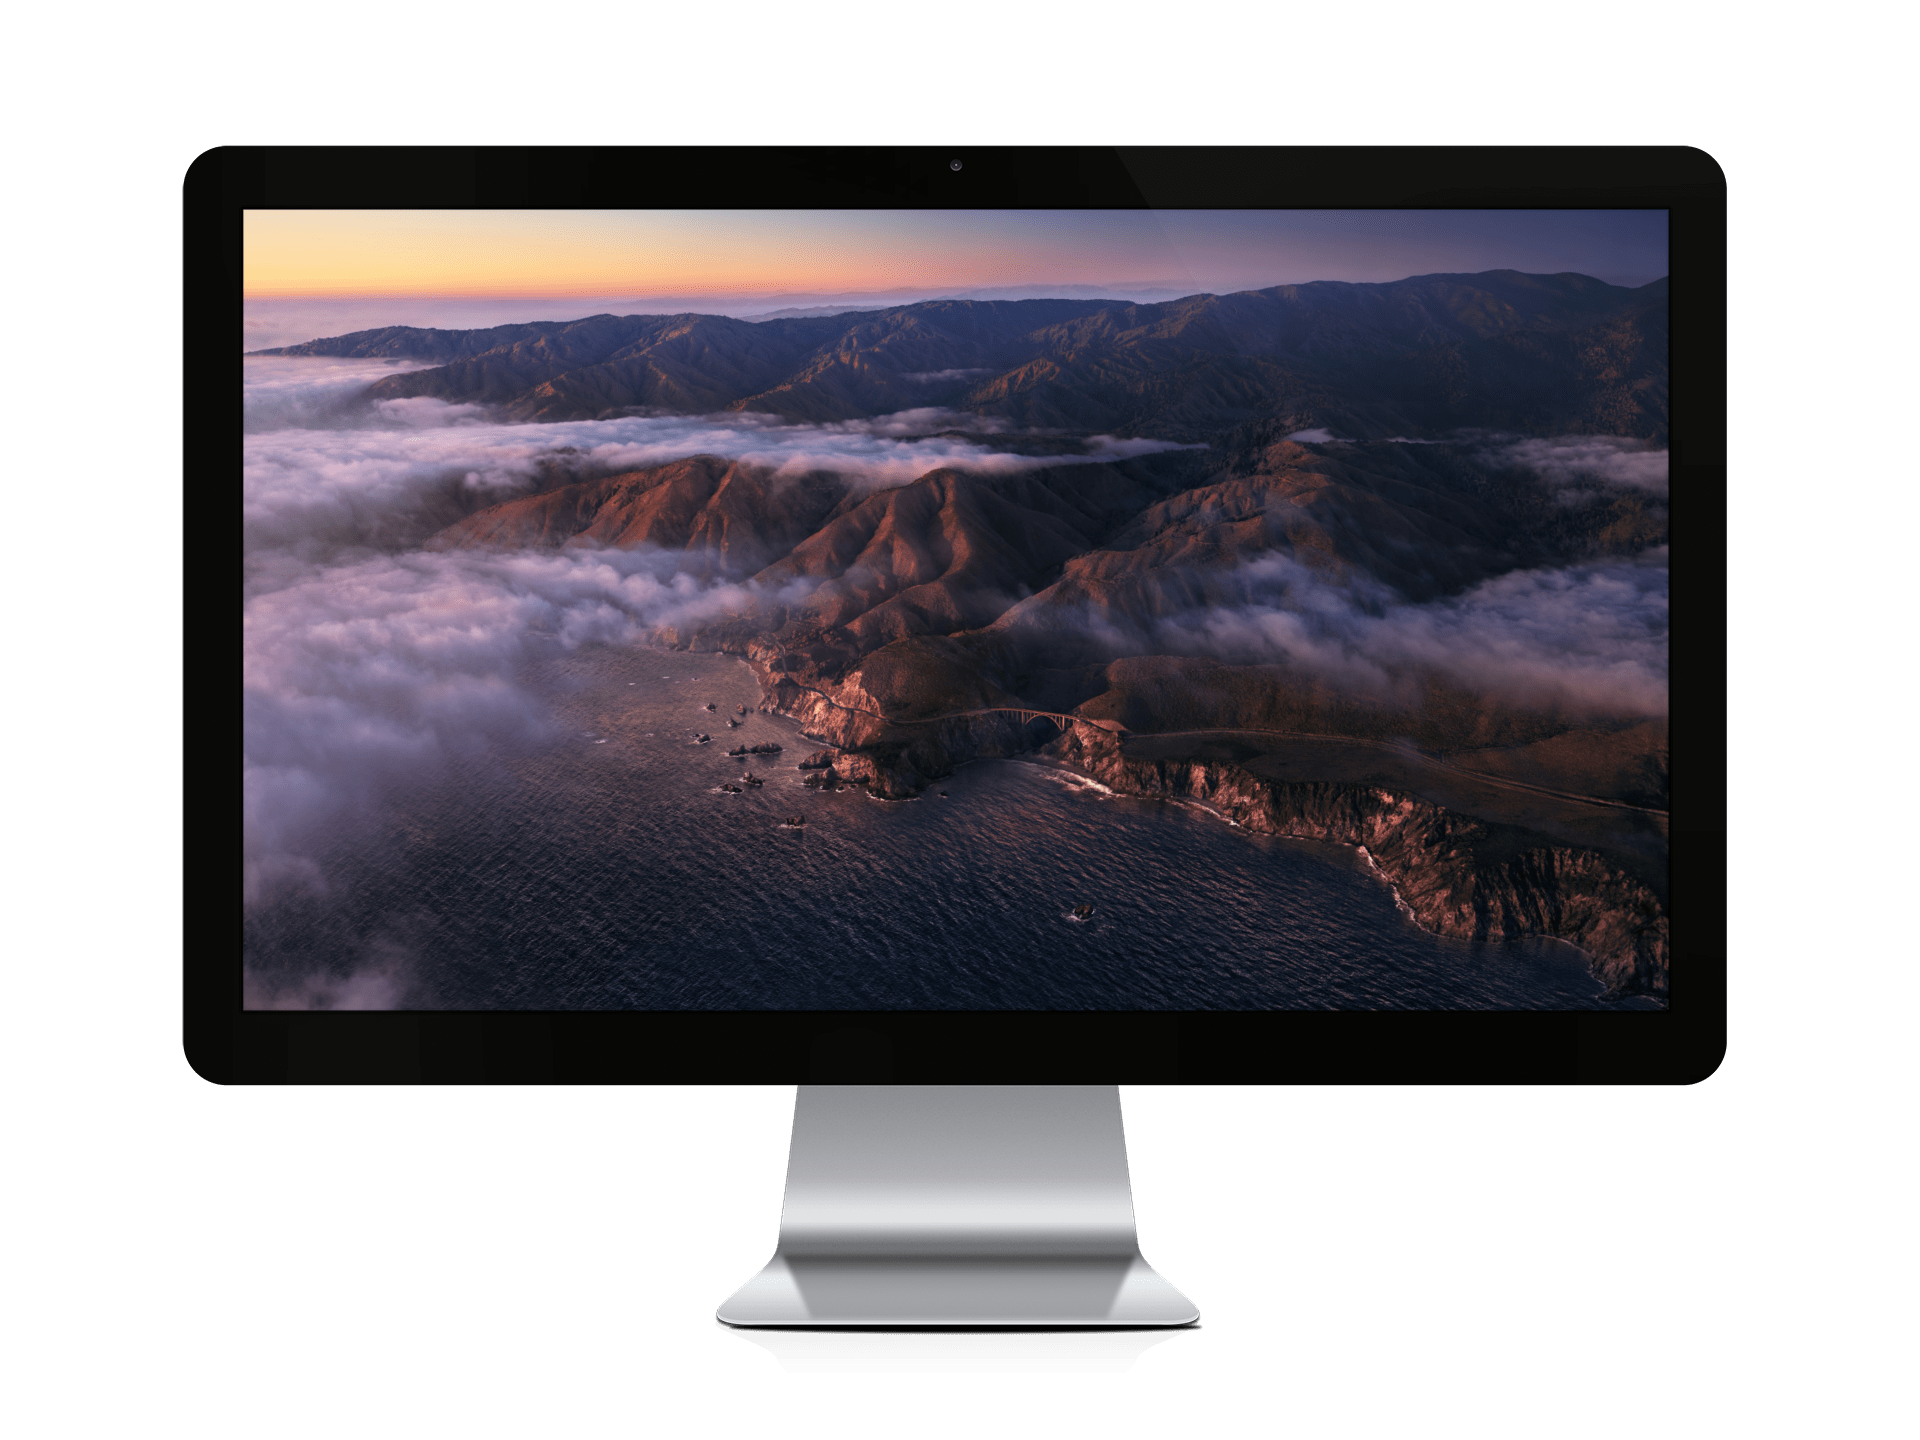 macOS Big Sur Daylight Wallpaper iDownloadBlog mockup